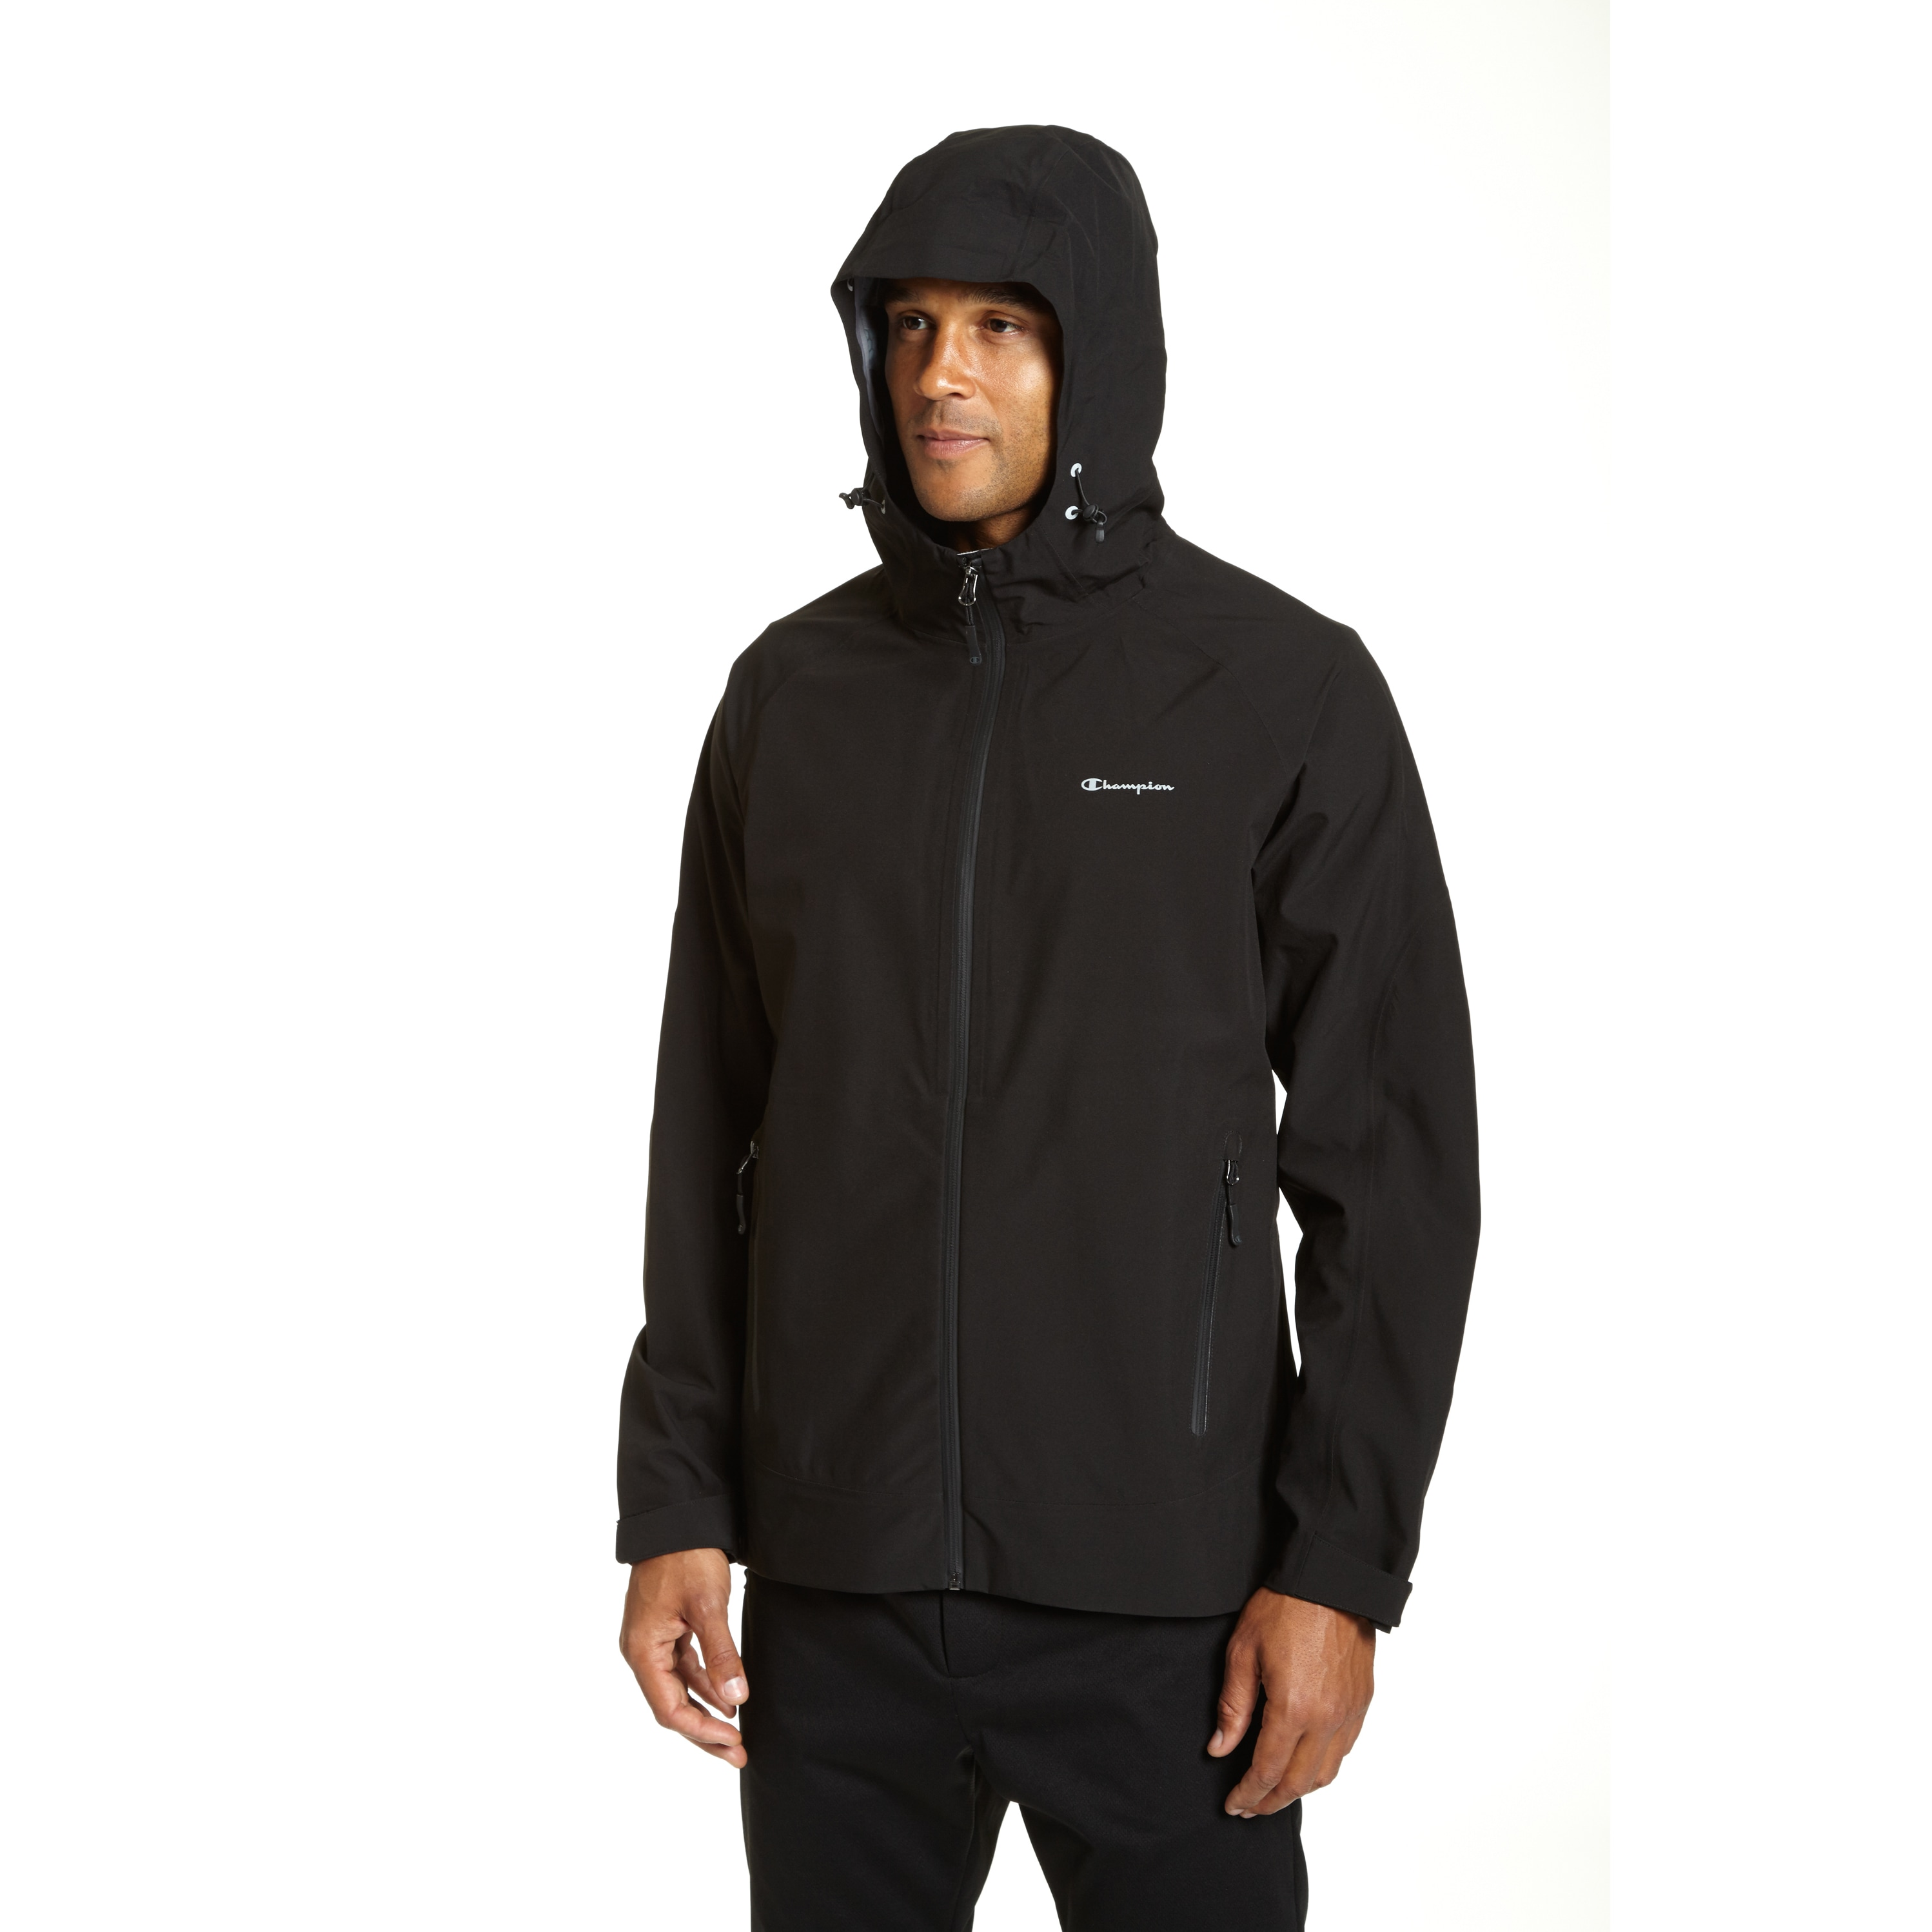 013d78ff7 Shop Champion Men's Stretch Waterproof Breathable All-weather Jacket - Free  Shipping Today - Overstock - 12734851